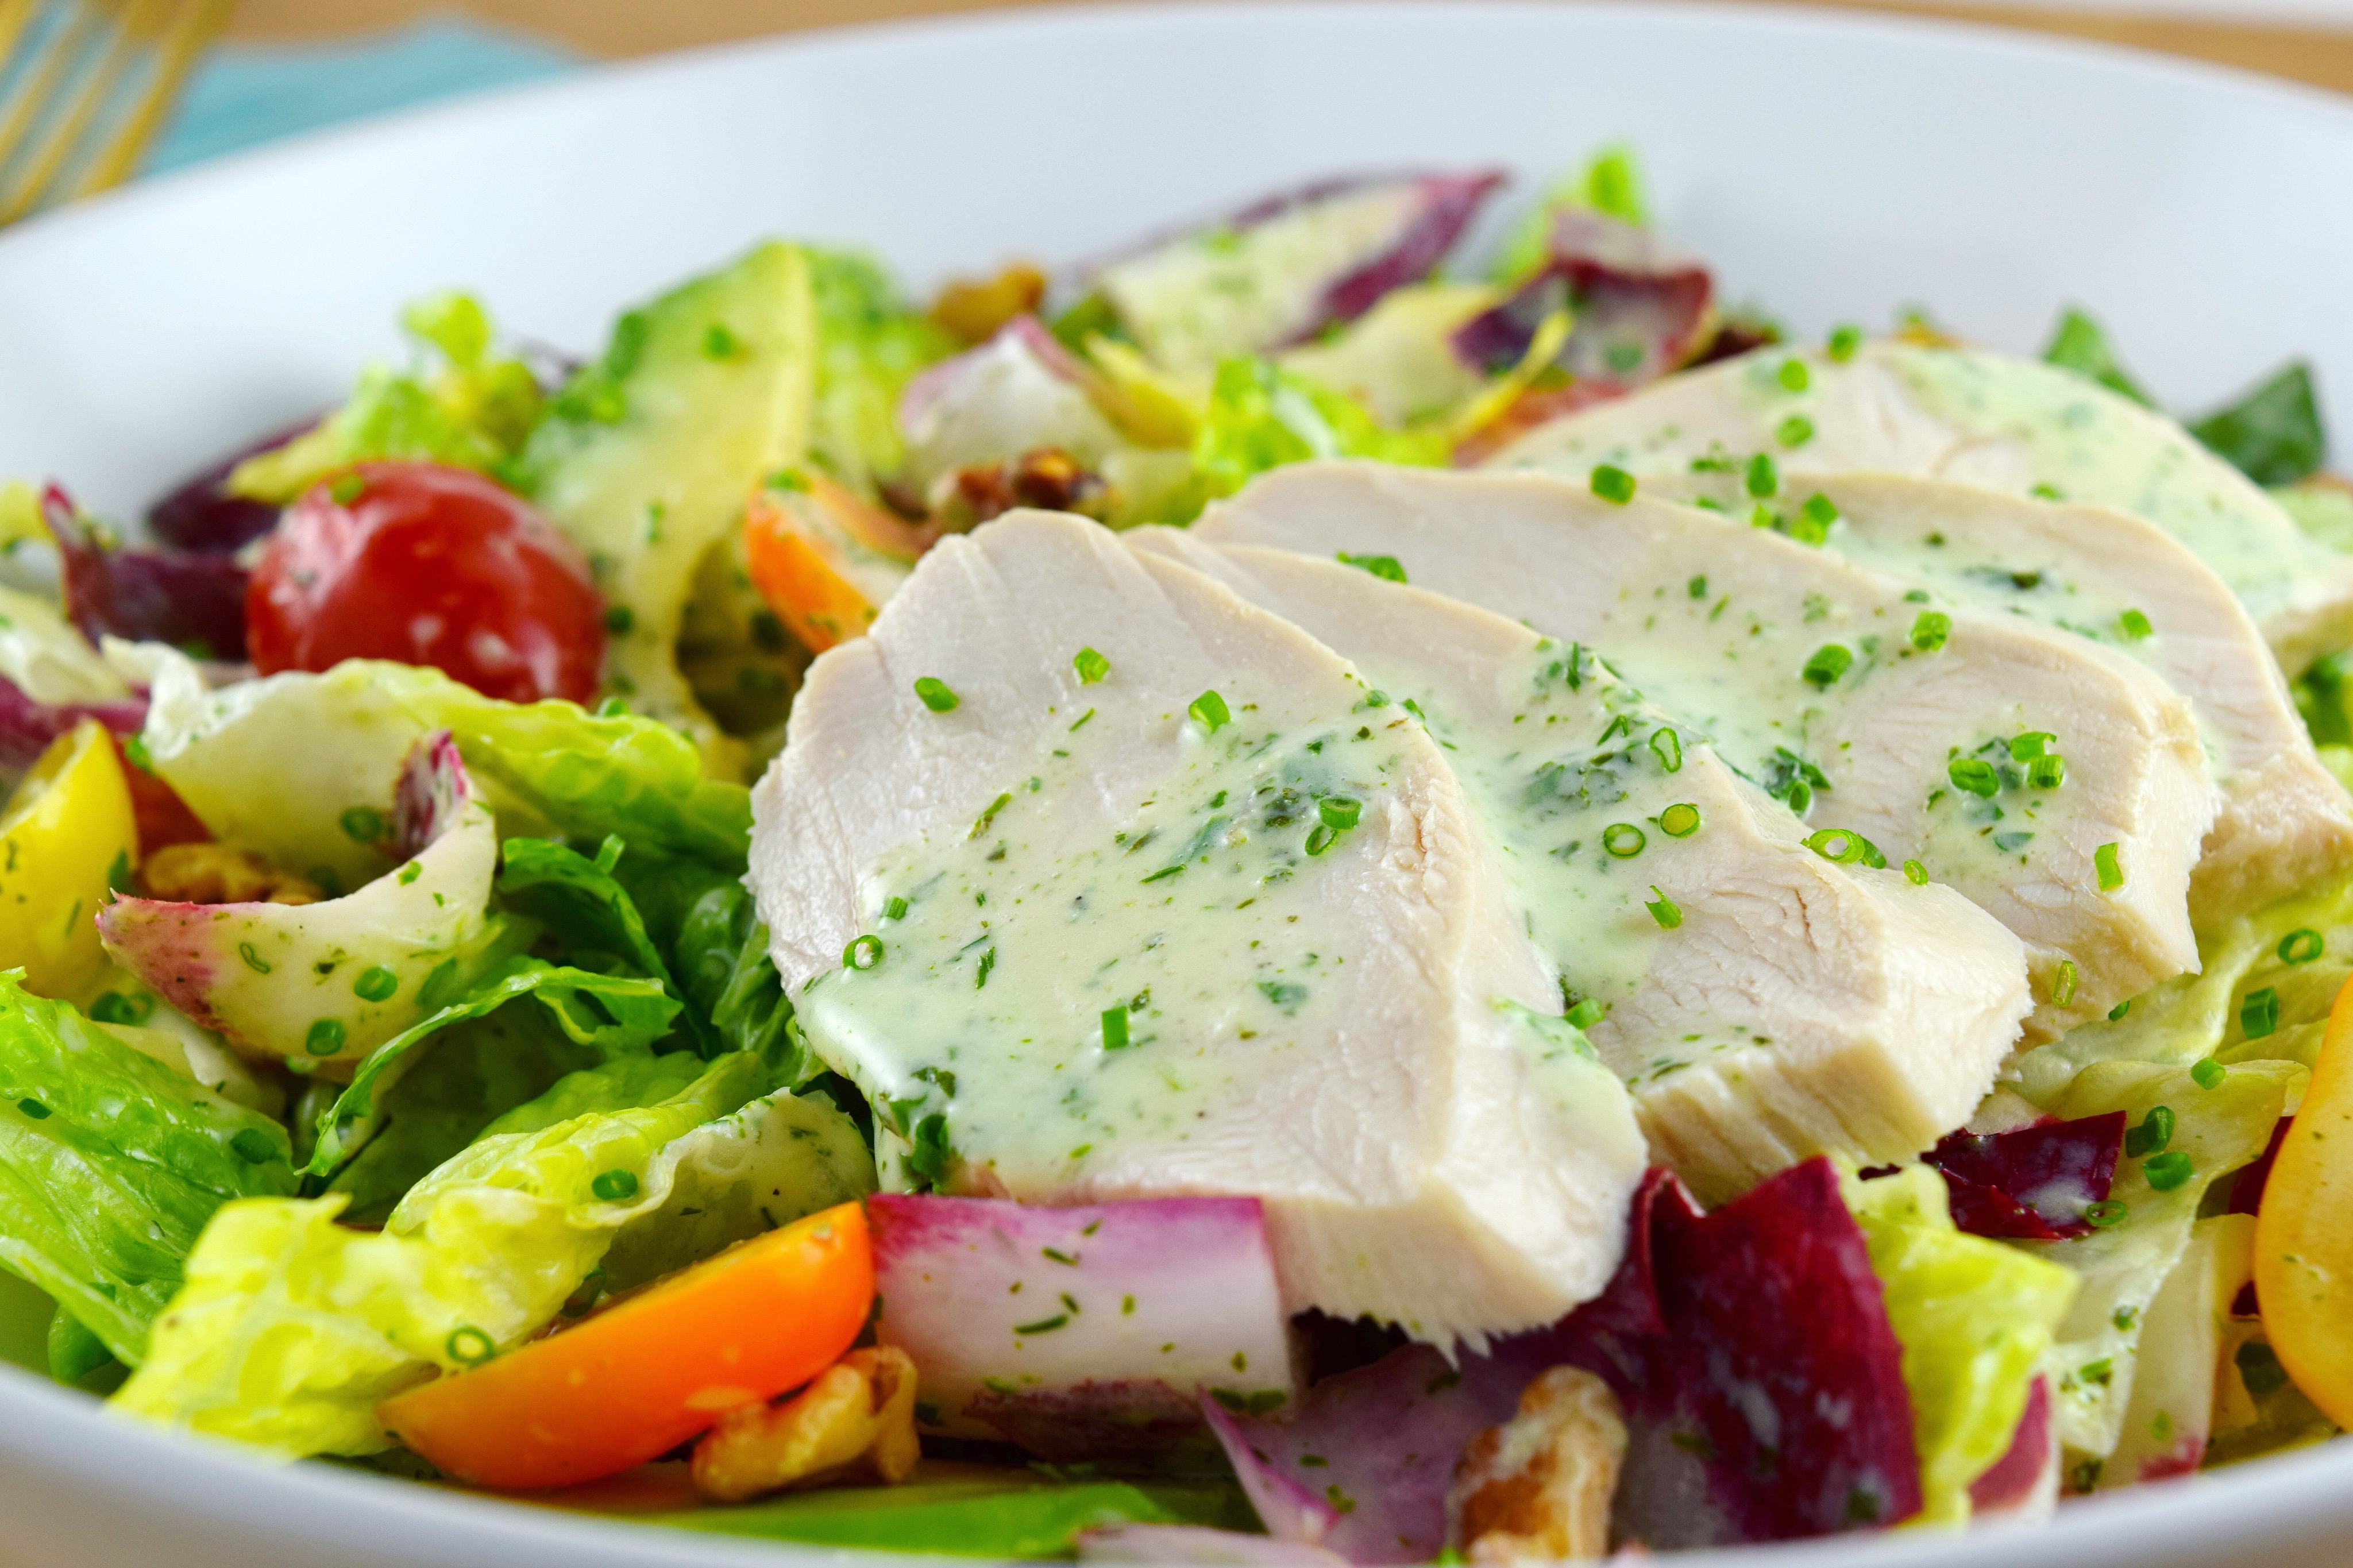 Poached chicken salad with buttermilk vinaigrette good health gourmet poached chicken salad with buttermilk vinaigrette forumfinder Choice Image